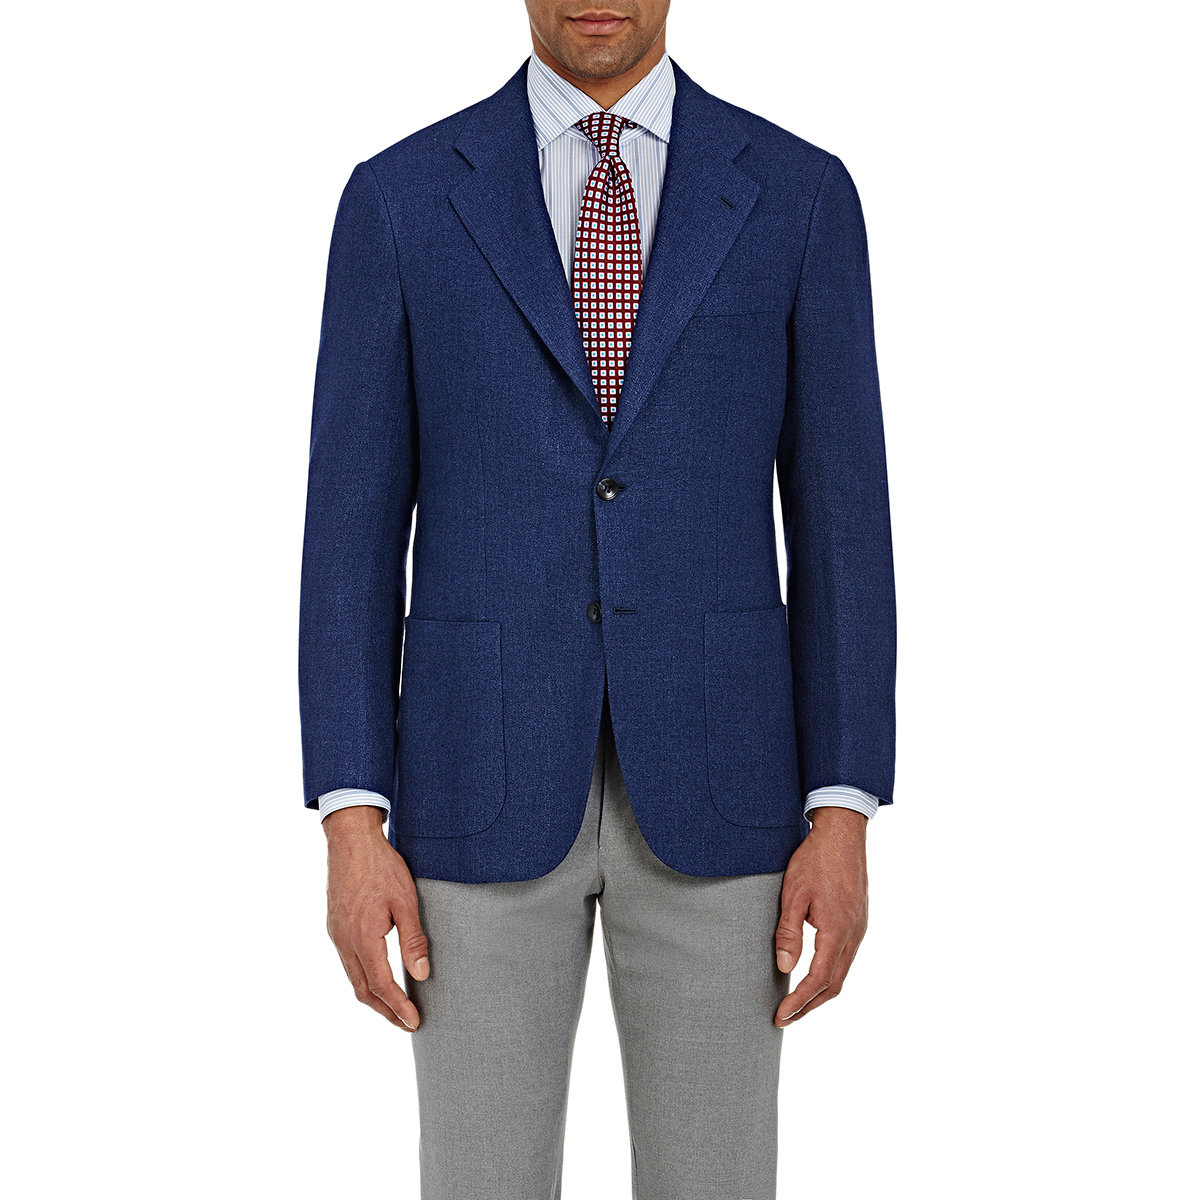 Free Shipping 2018 Newest buttoned jacket - Blue Kiton Fake Discount Very Cheap Cheap Clearance Discount With Mastercard nDssPVb